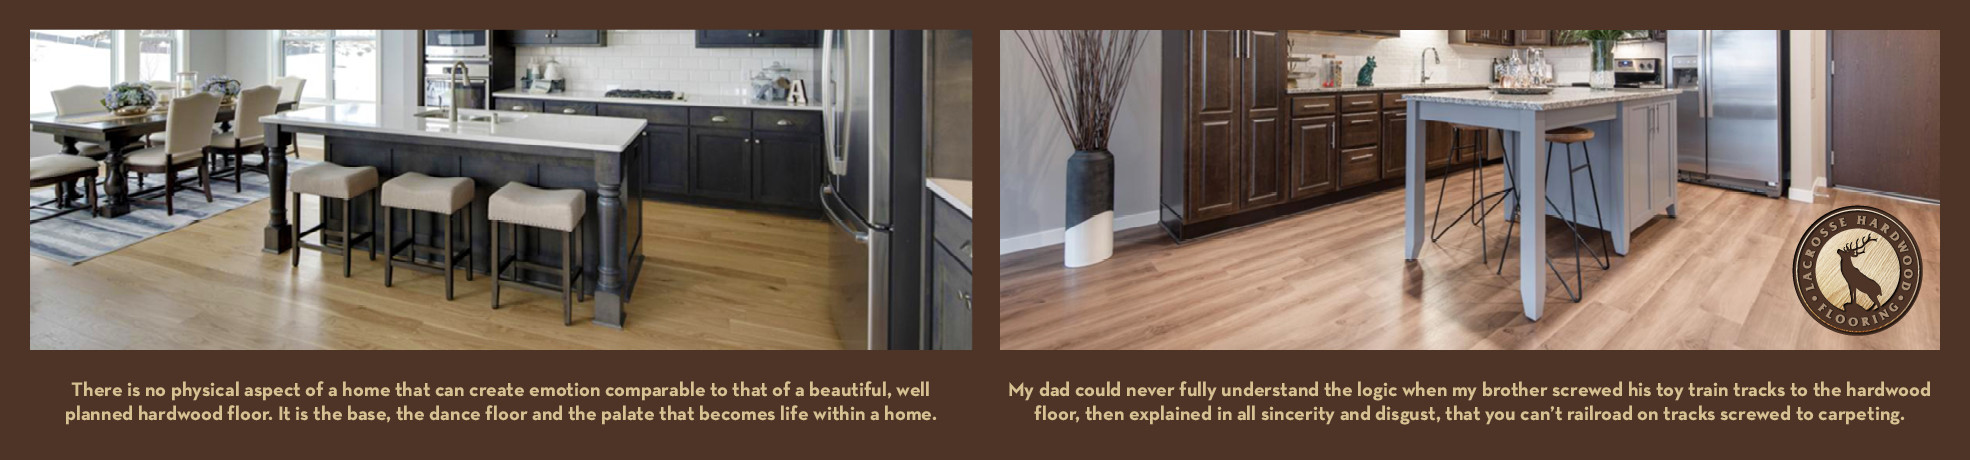 Hardwood Flooring Installation issues Of Lacrosse Hardwood Flooring Walnut White Oak Red Oak Hickory Intended for Lhfsliderv24